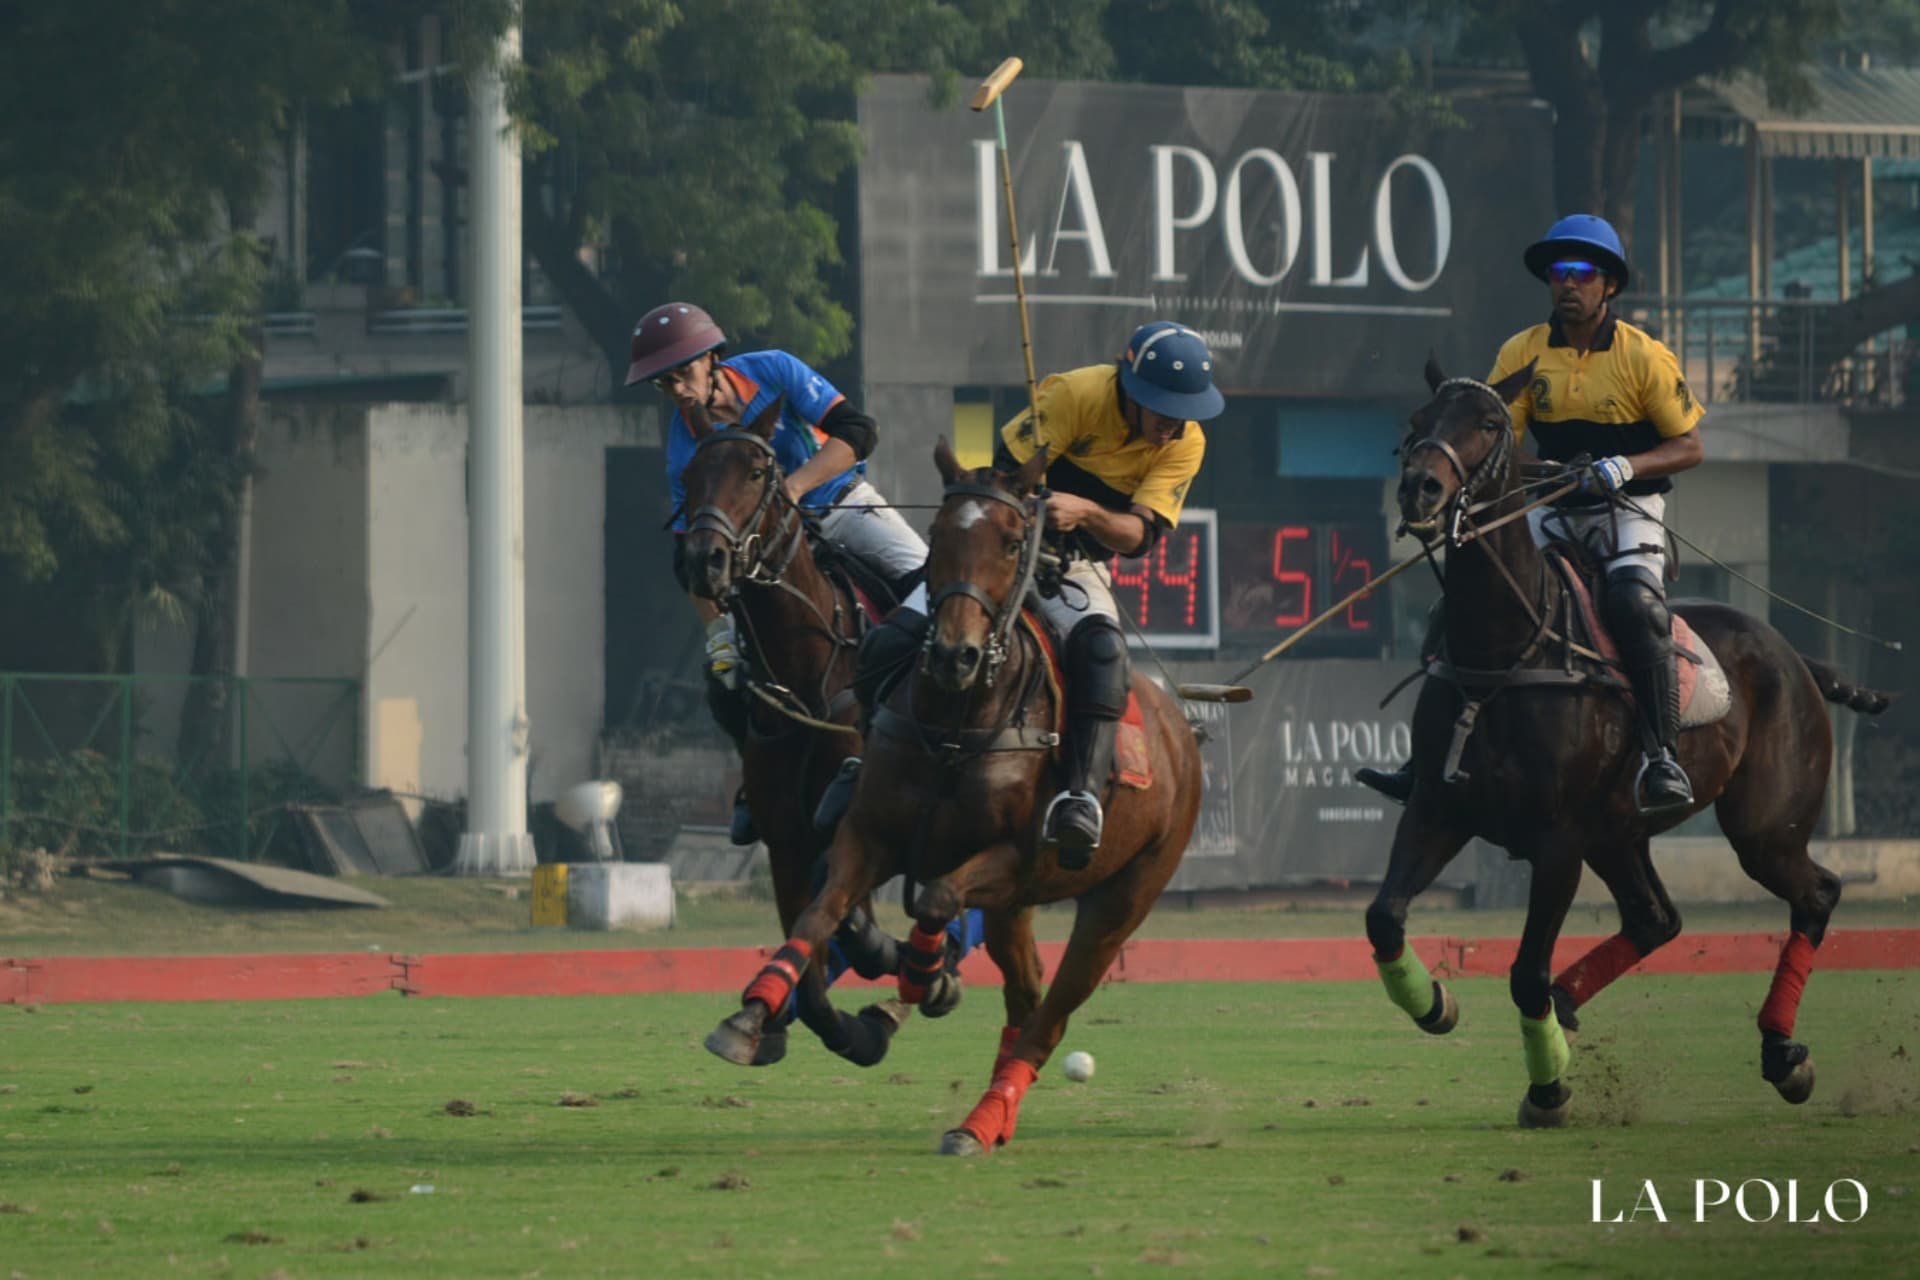 A dive into the Polo, Equine and the Luxury Lifestyle